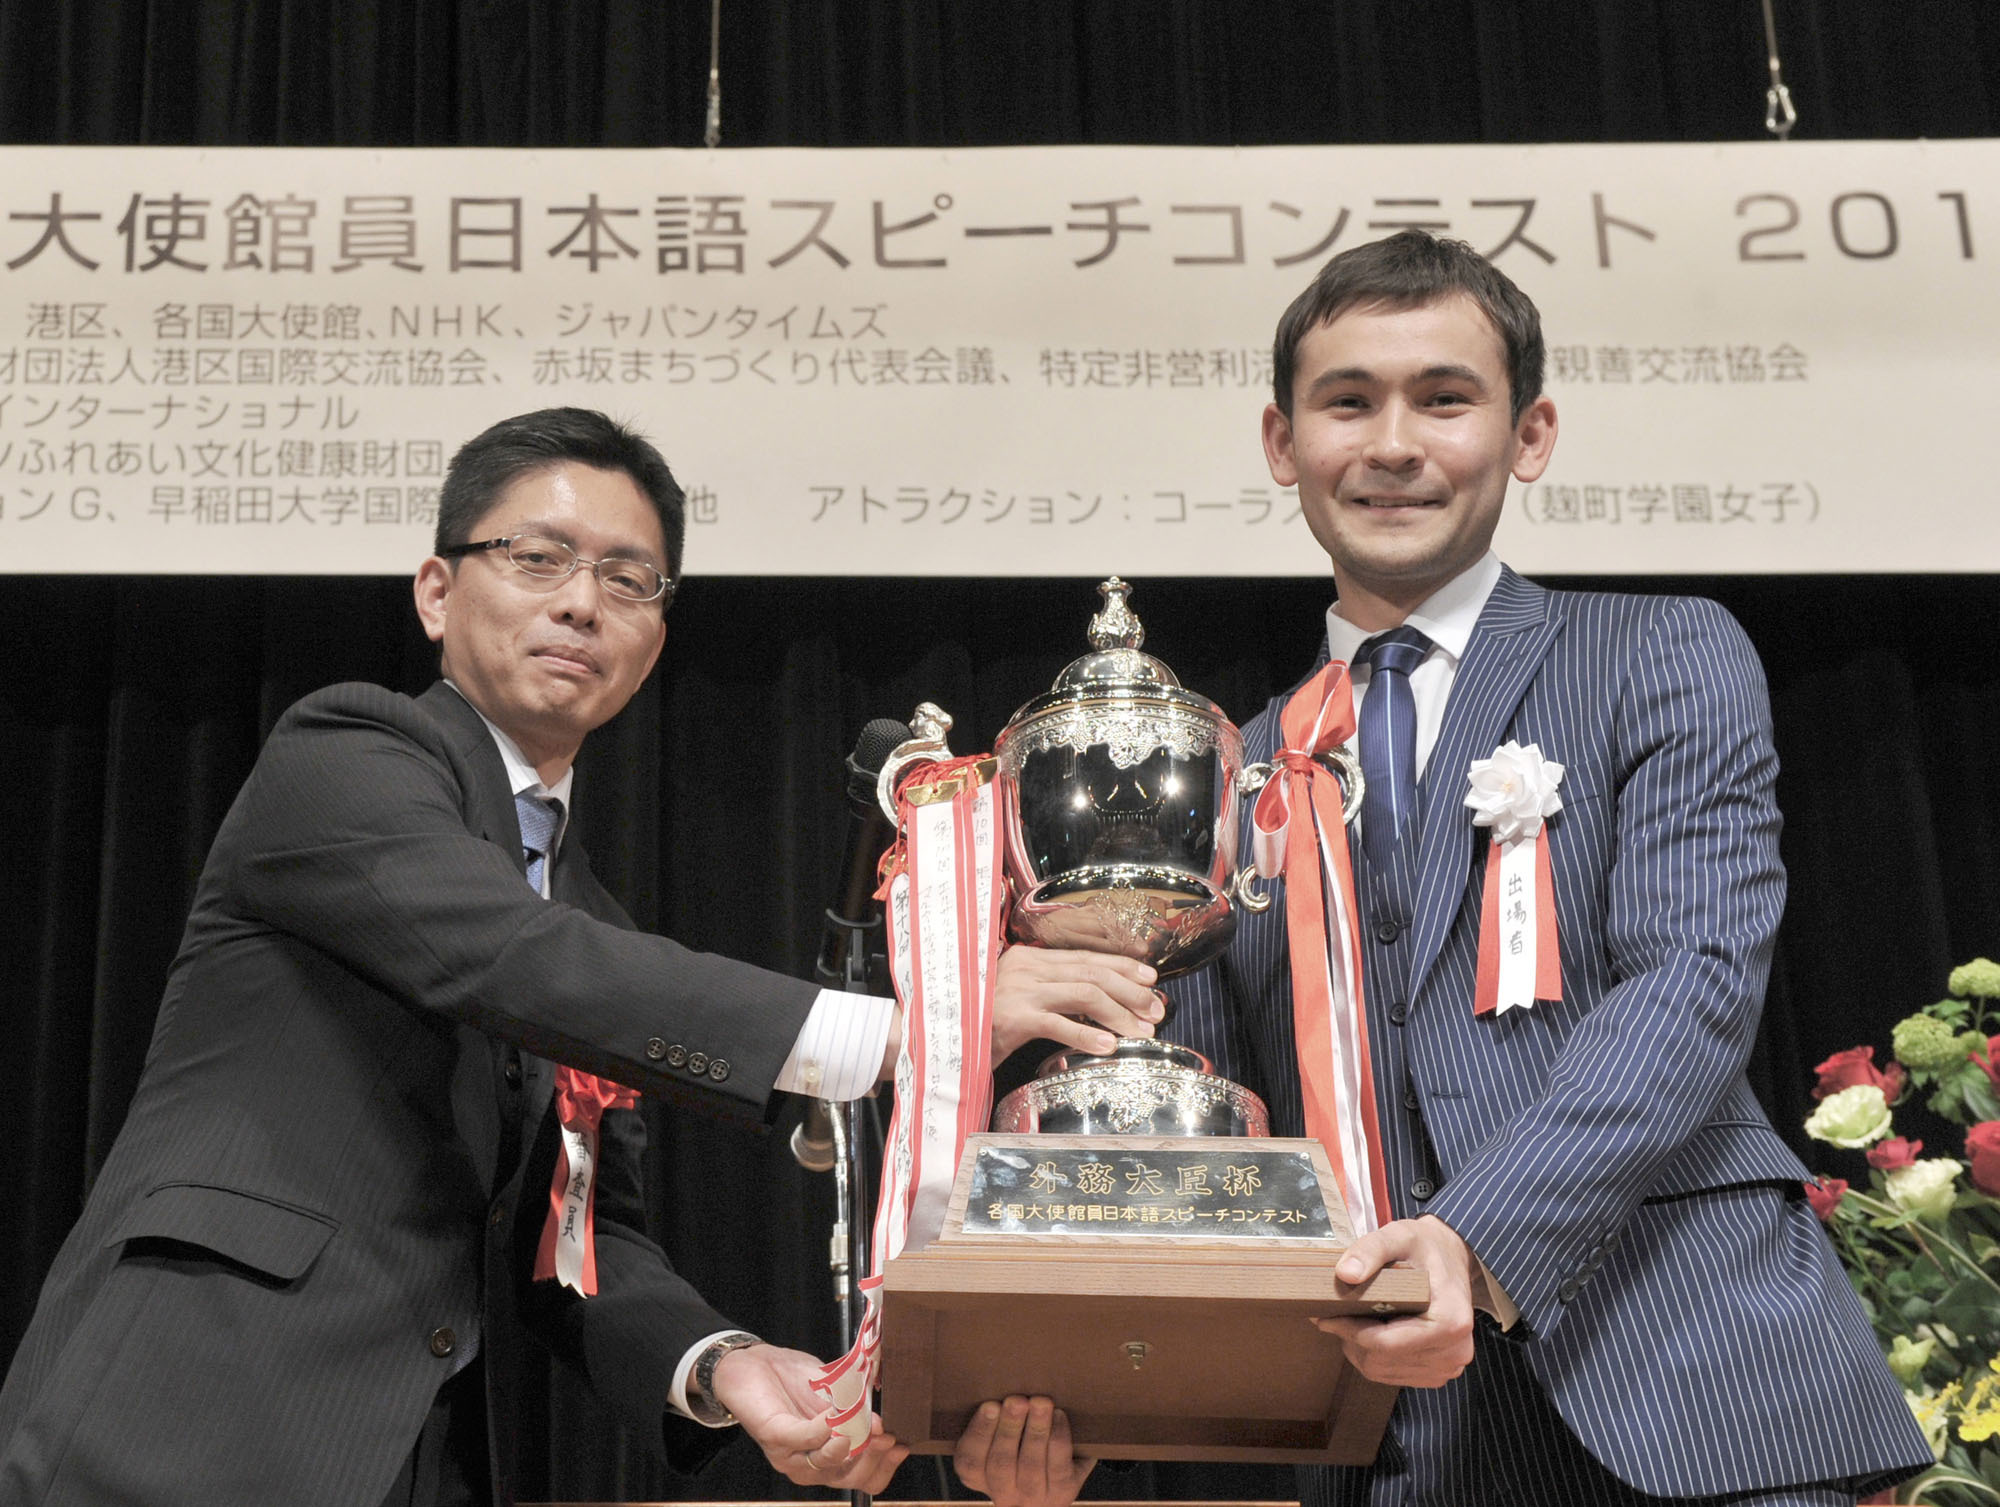 Thirteen contestants from 12 embassies took part in the 19th annual Japanese Speech Contest for Foreign Embassy Officials in Tokyo at the Akasaka Kumin Center on April 23. Fakhriddin Ergashev (Uzbekistan) receives the Foreign Minister's Award from Daisuke Okabe, director of cultural affairs and overseas public relations at the Foreign Ministry. | YOSHIAKI MIURA